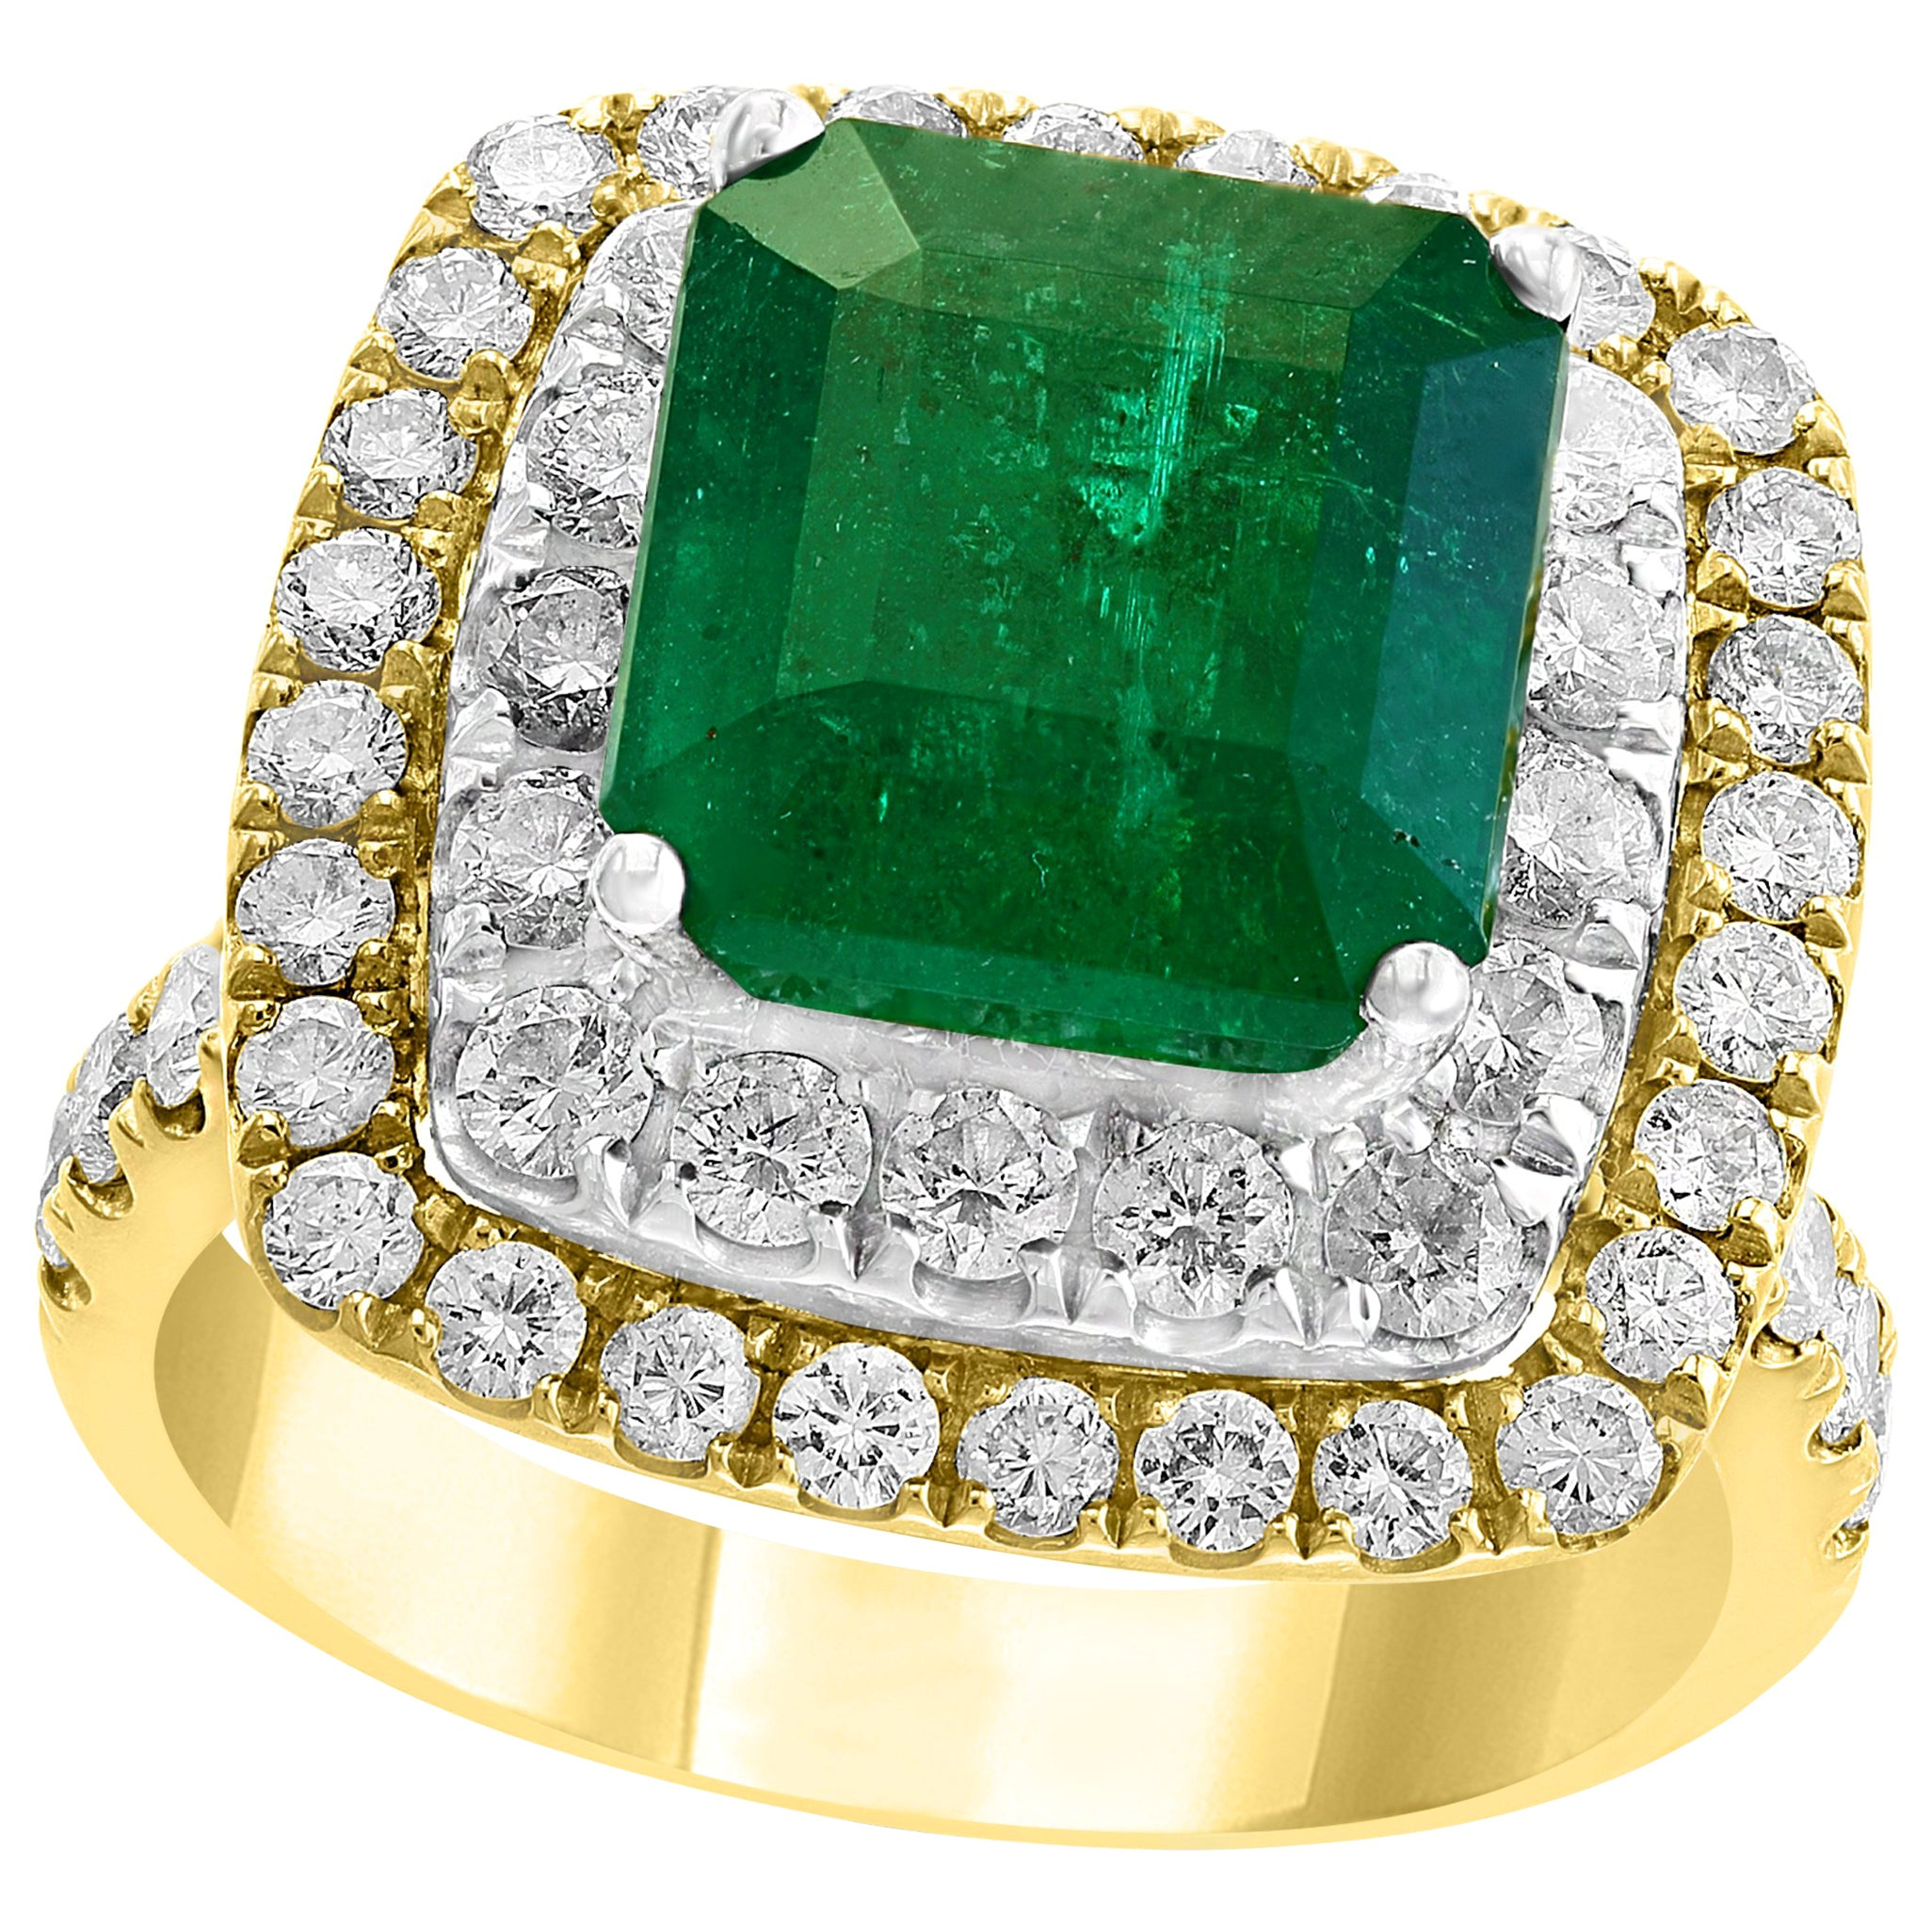 4.5 Carat Emerald Cut Colombian Emerald and Diamond Two-Tone 18 Karat Gold Ring